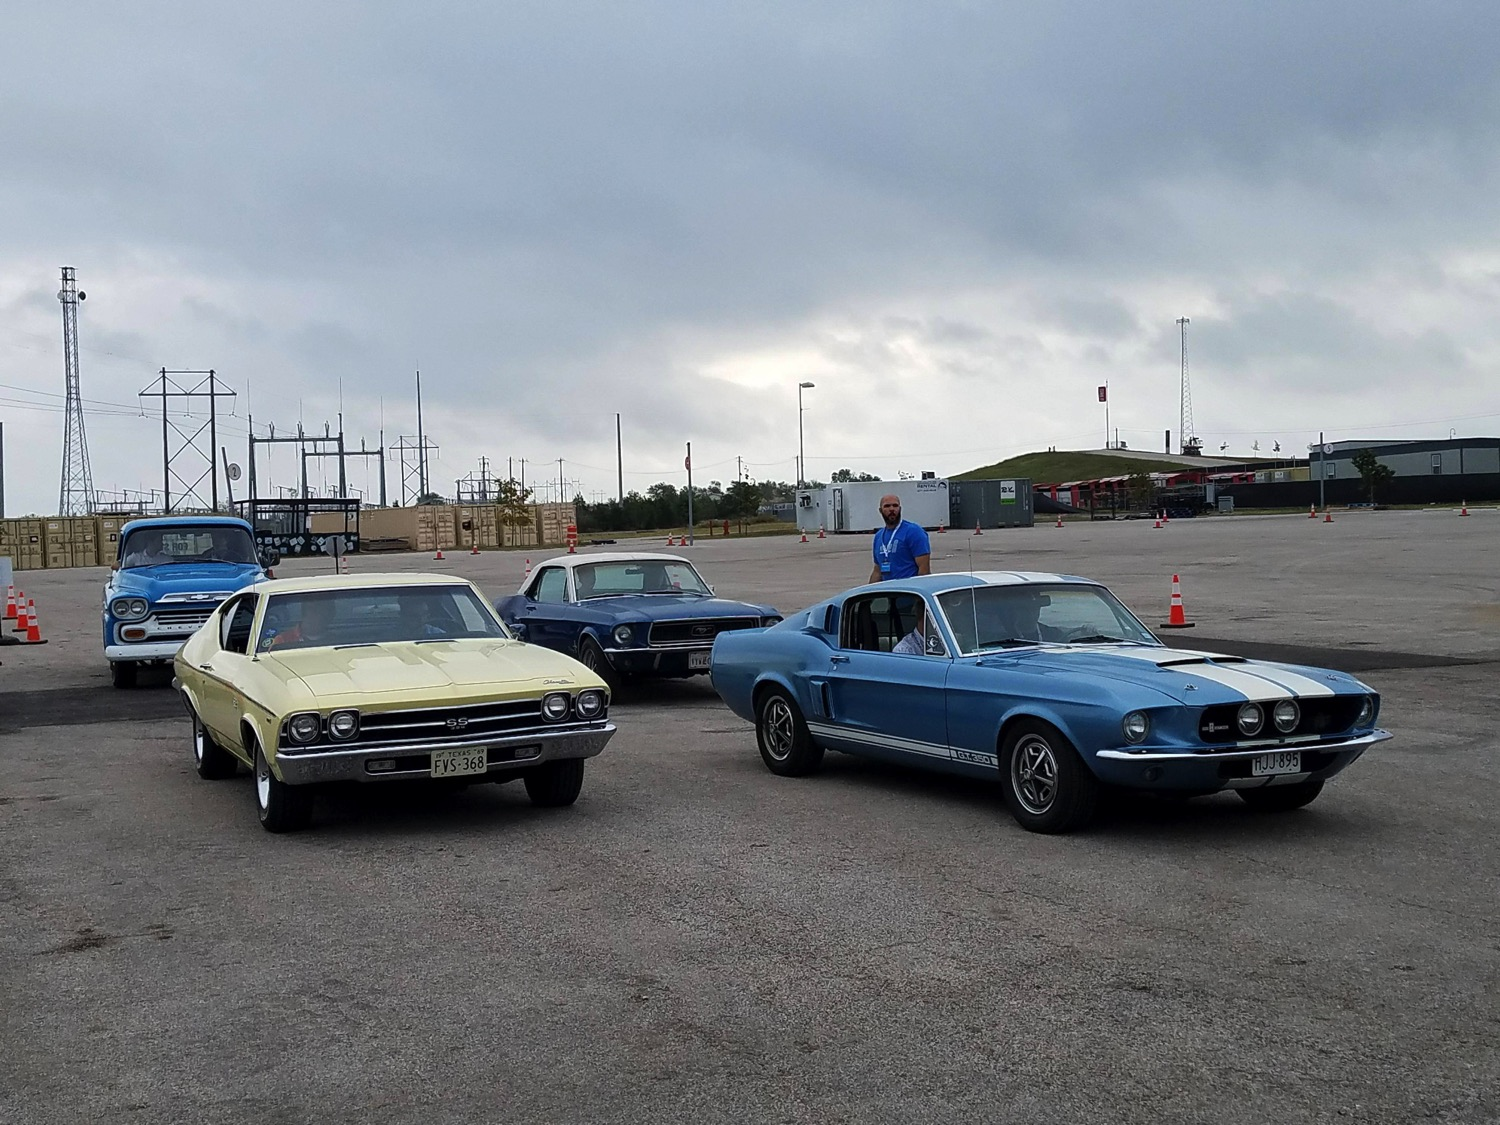 Hagerty Driving Experience Shifting Gears For The Next